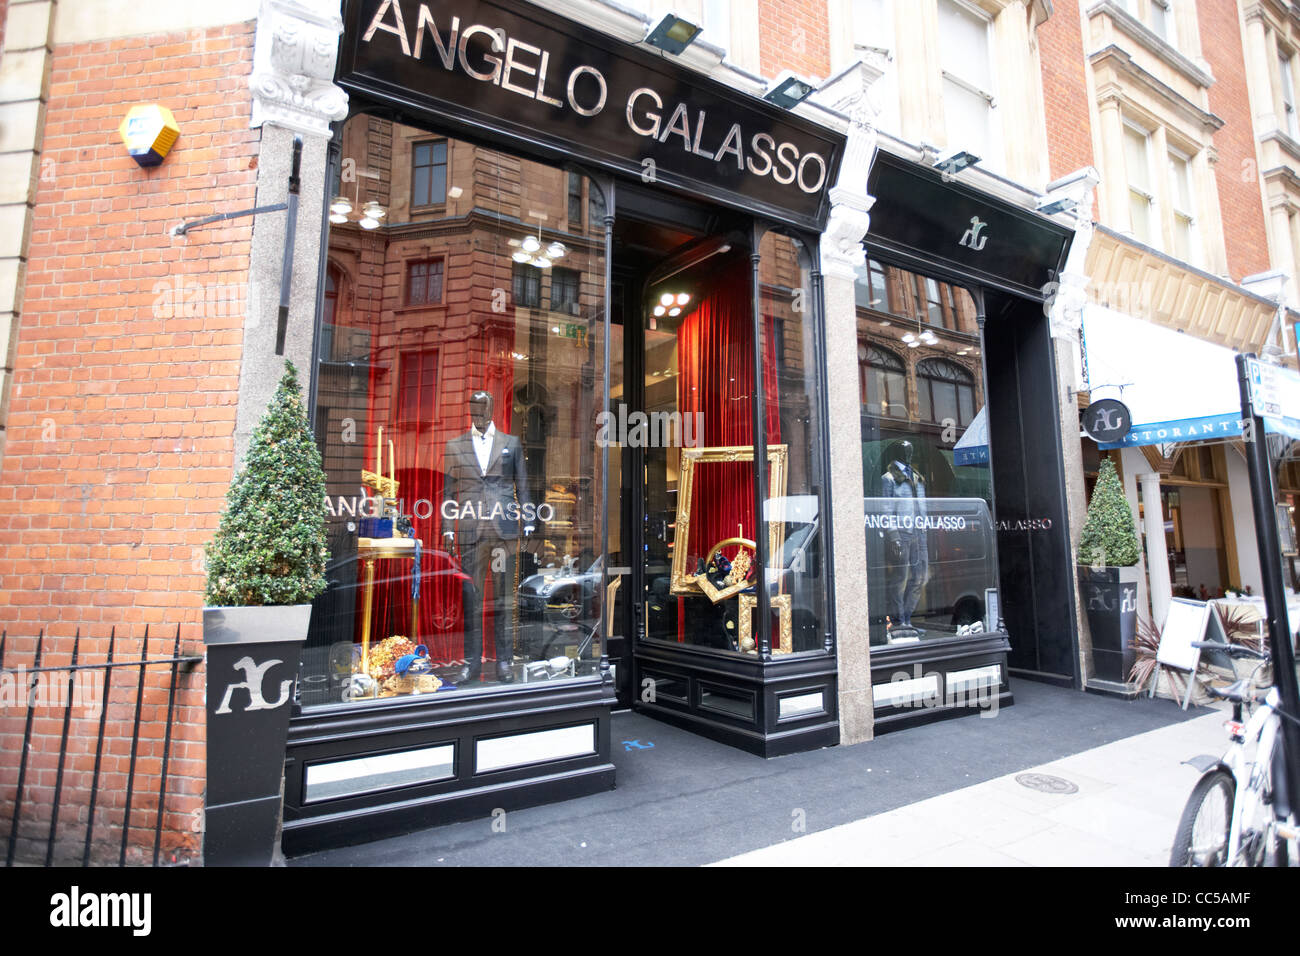 angelo galasso italian fashion designer shop store in knightsbridge stock photo royalty free. Black Bedroom Furniture Sets. Home Design Ideas